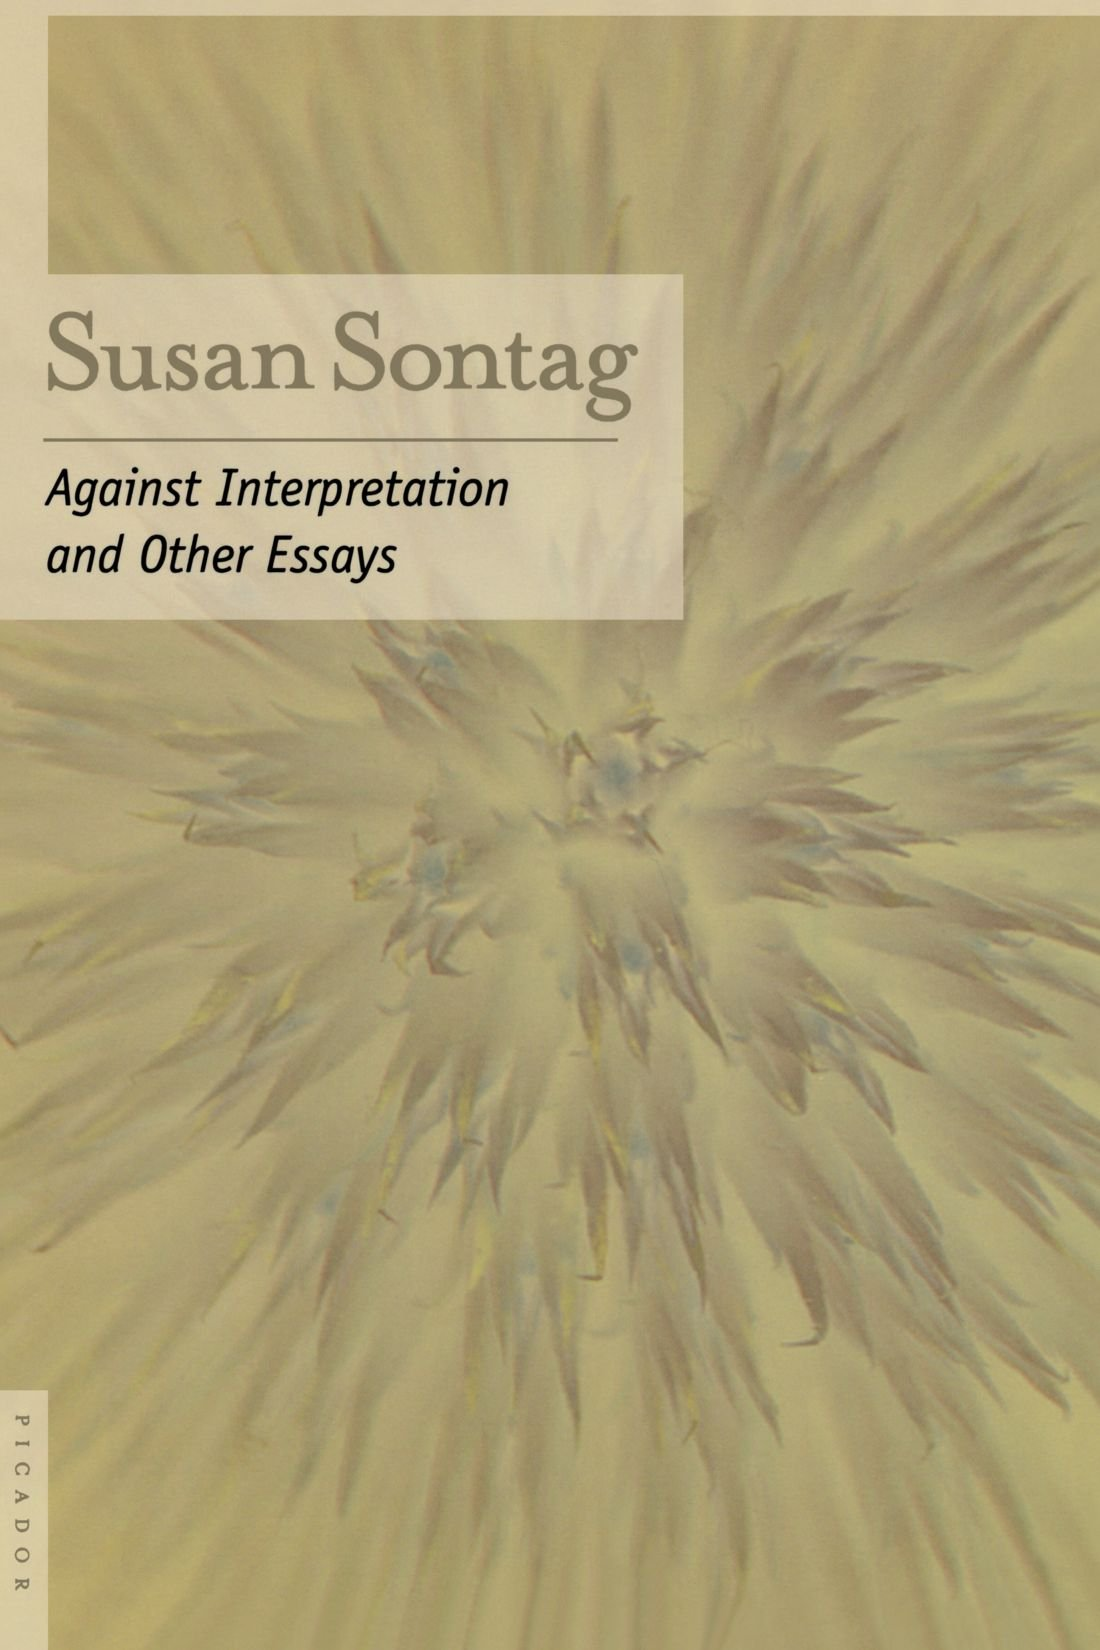 A Modest Proposal Ideas For Essays Against Interpretation And Other Essays Susan Sontag   Amazoncom Books Essay Of Health also Essay Mahatma Gandhi English Against Interpretation And Other Essays Susan Sontag  Reflective Essay Thesis Statement Examples